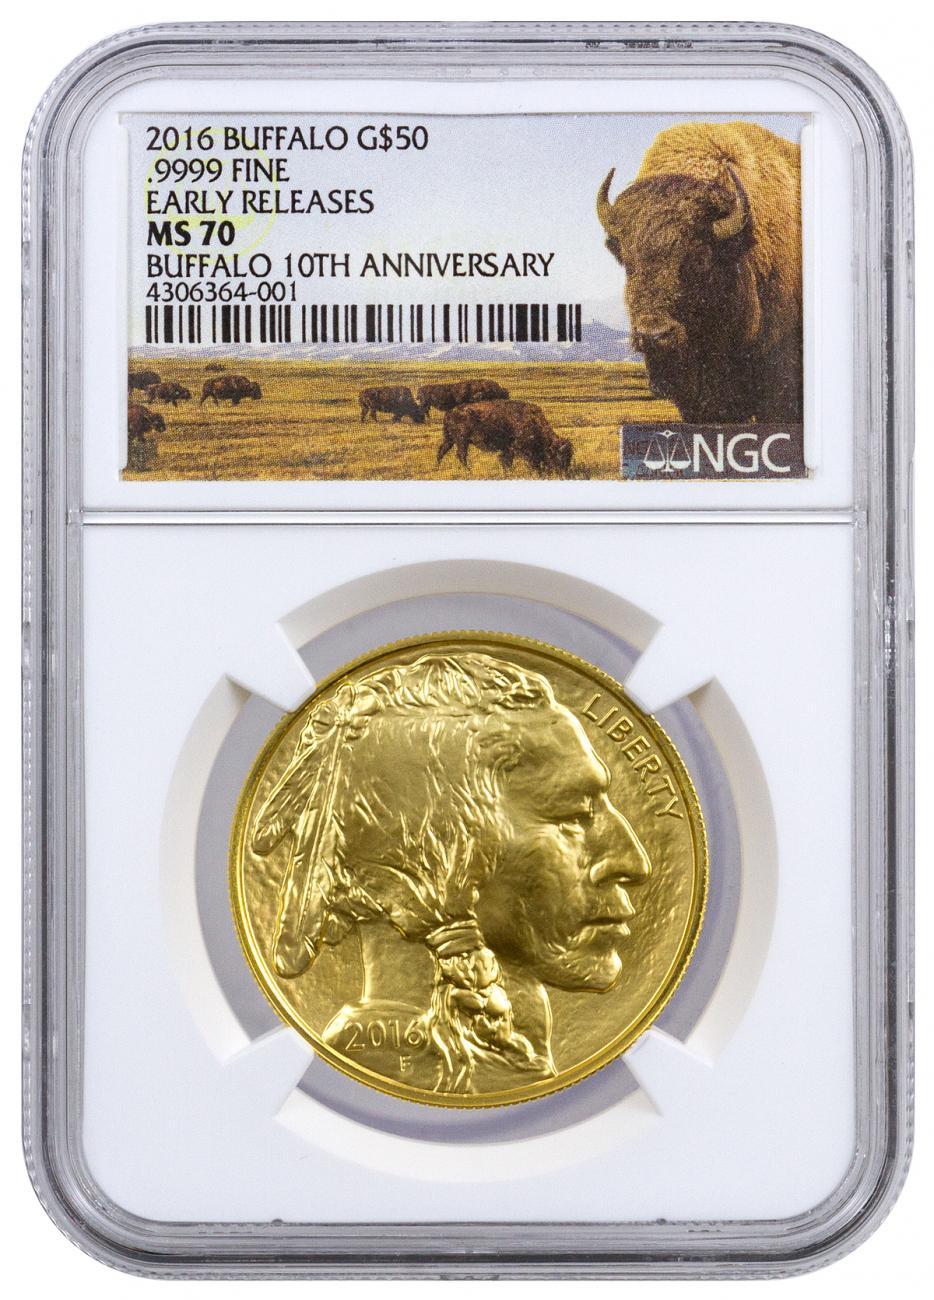 2016 1 oz Gold Buffalo $50 Coin NGC MS70 ER (Buffalo Label)